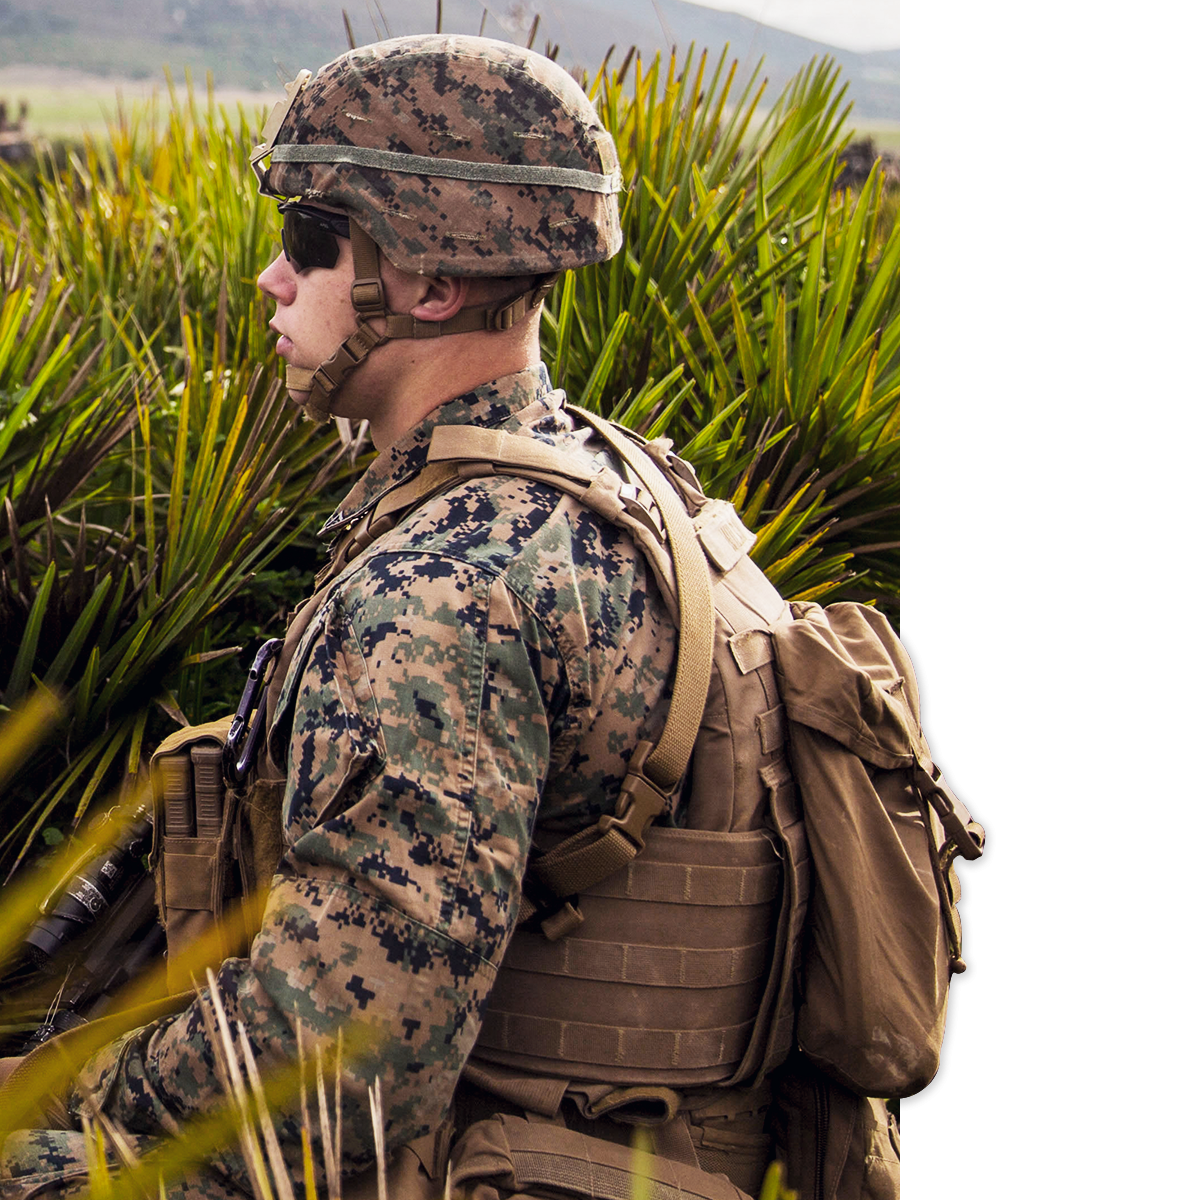 A photo of a marine in combat fatigues.